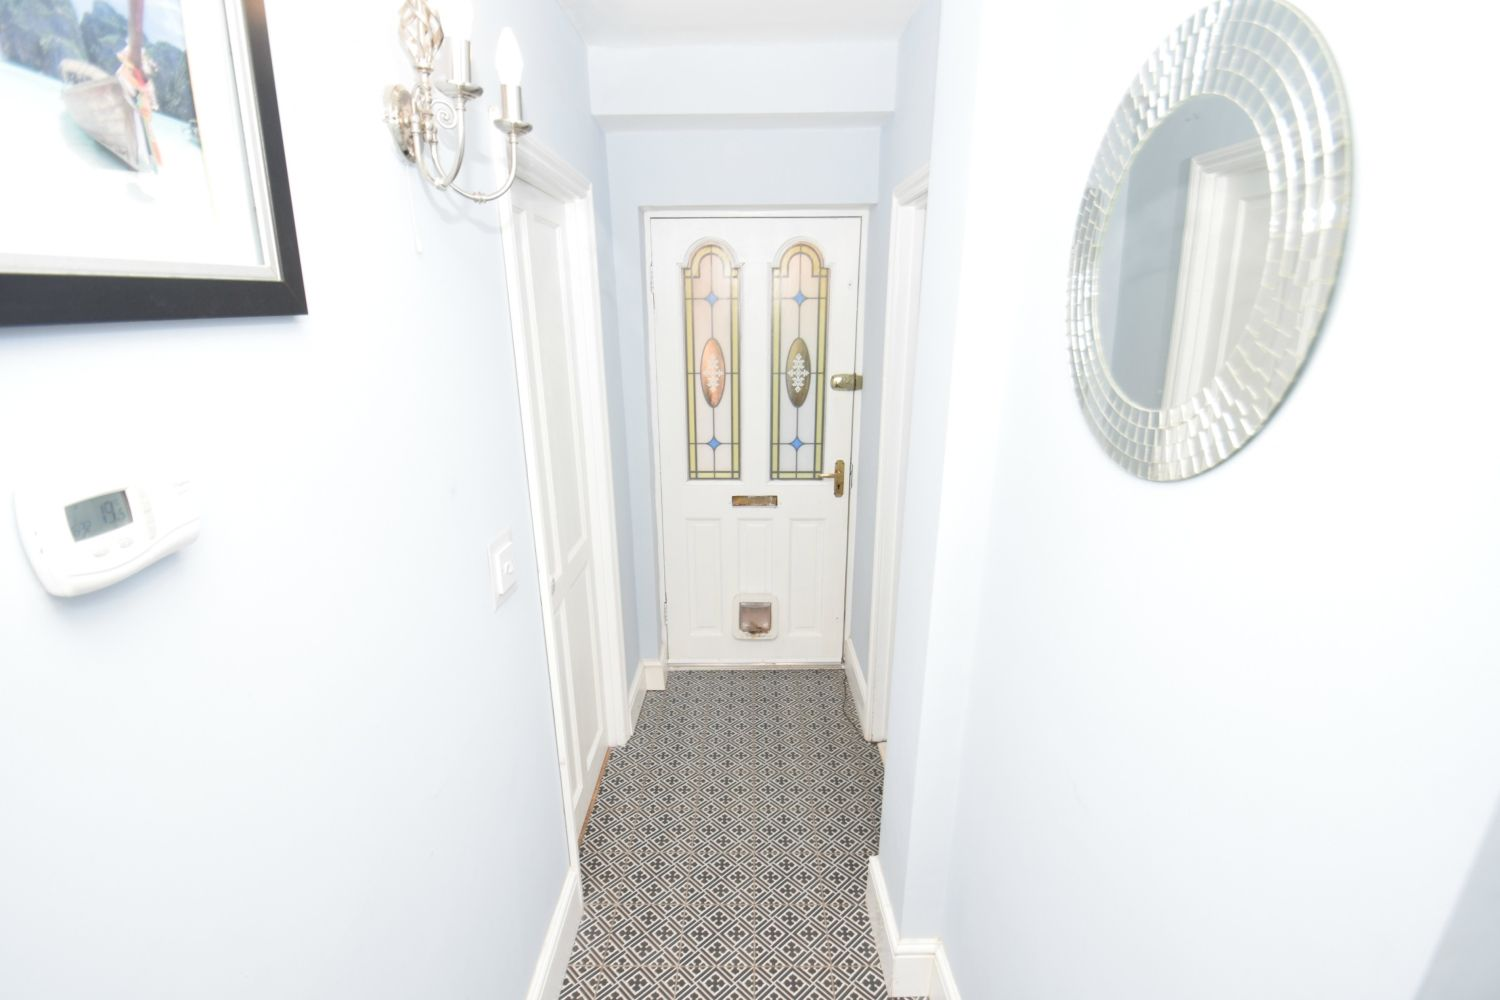 4 bed semi-detached for sale in Upland Grove, Bromsgrove, B61 12